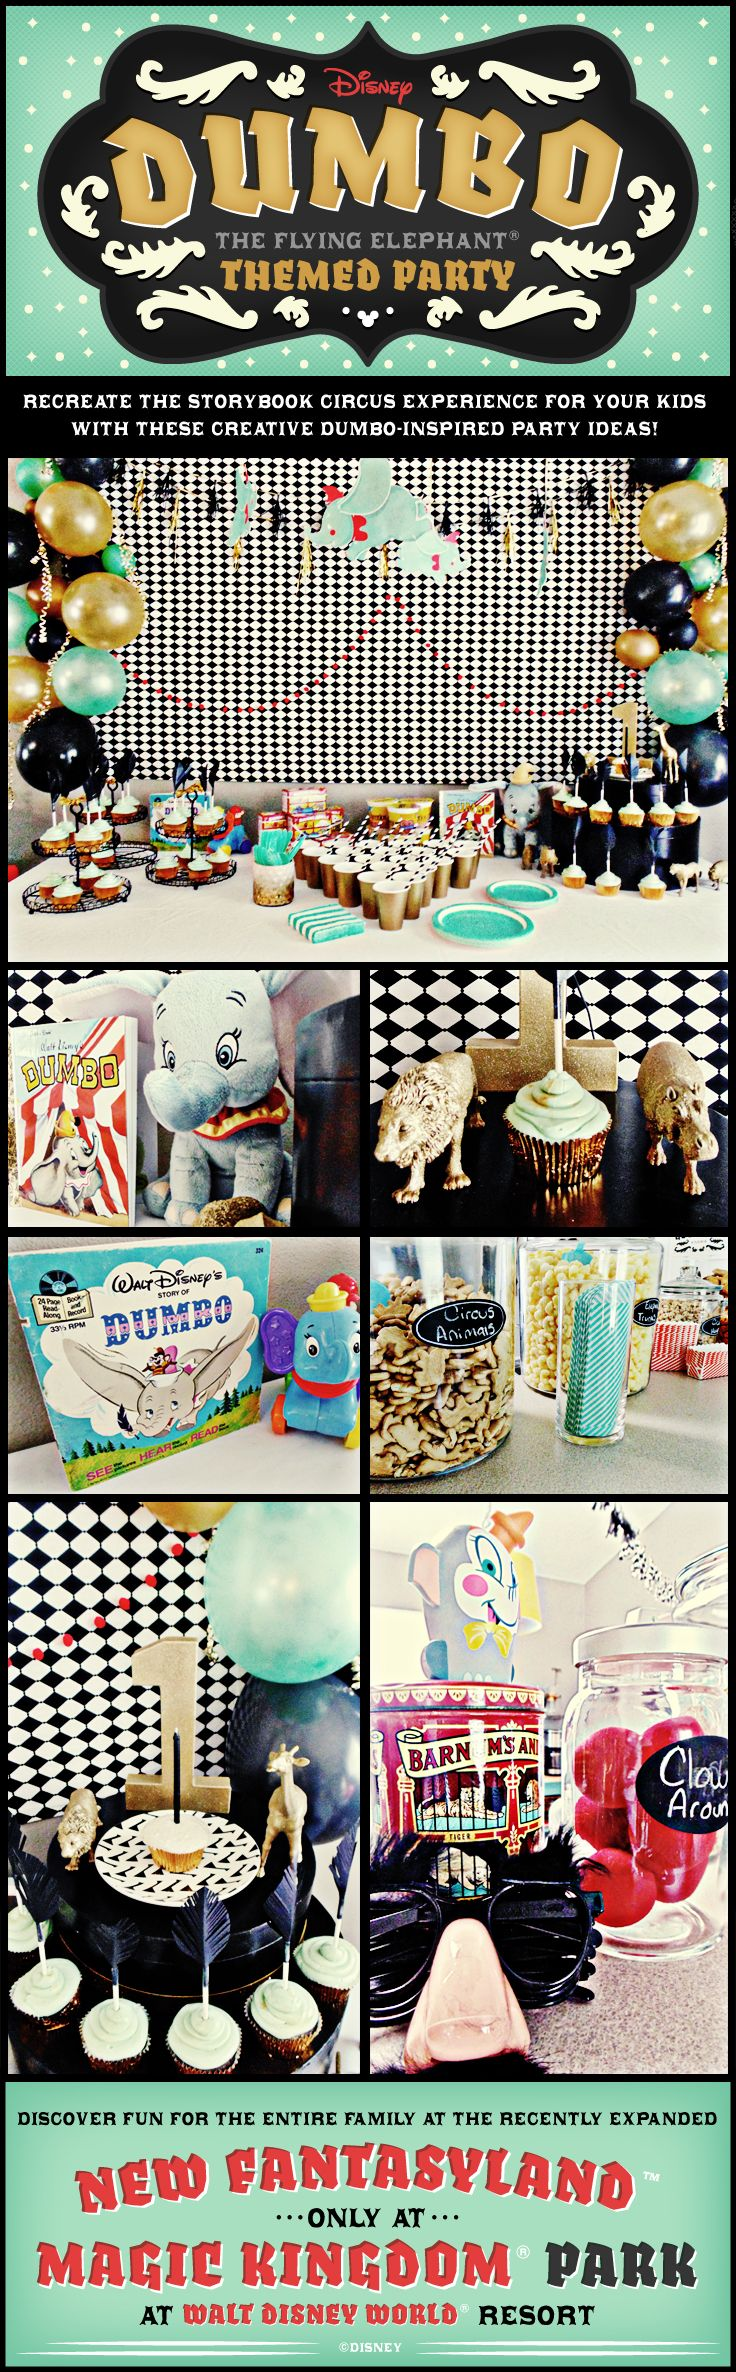 Dumbo the Flying Elephant themed party ideas! #waltdisneyworld #diy